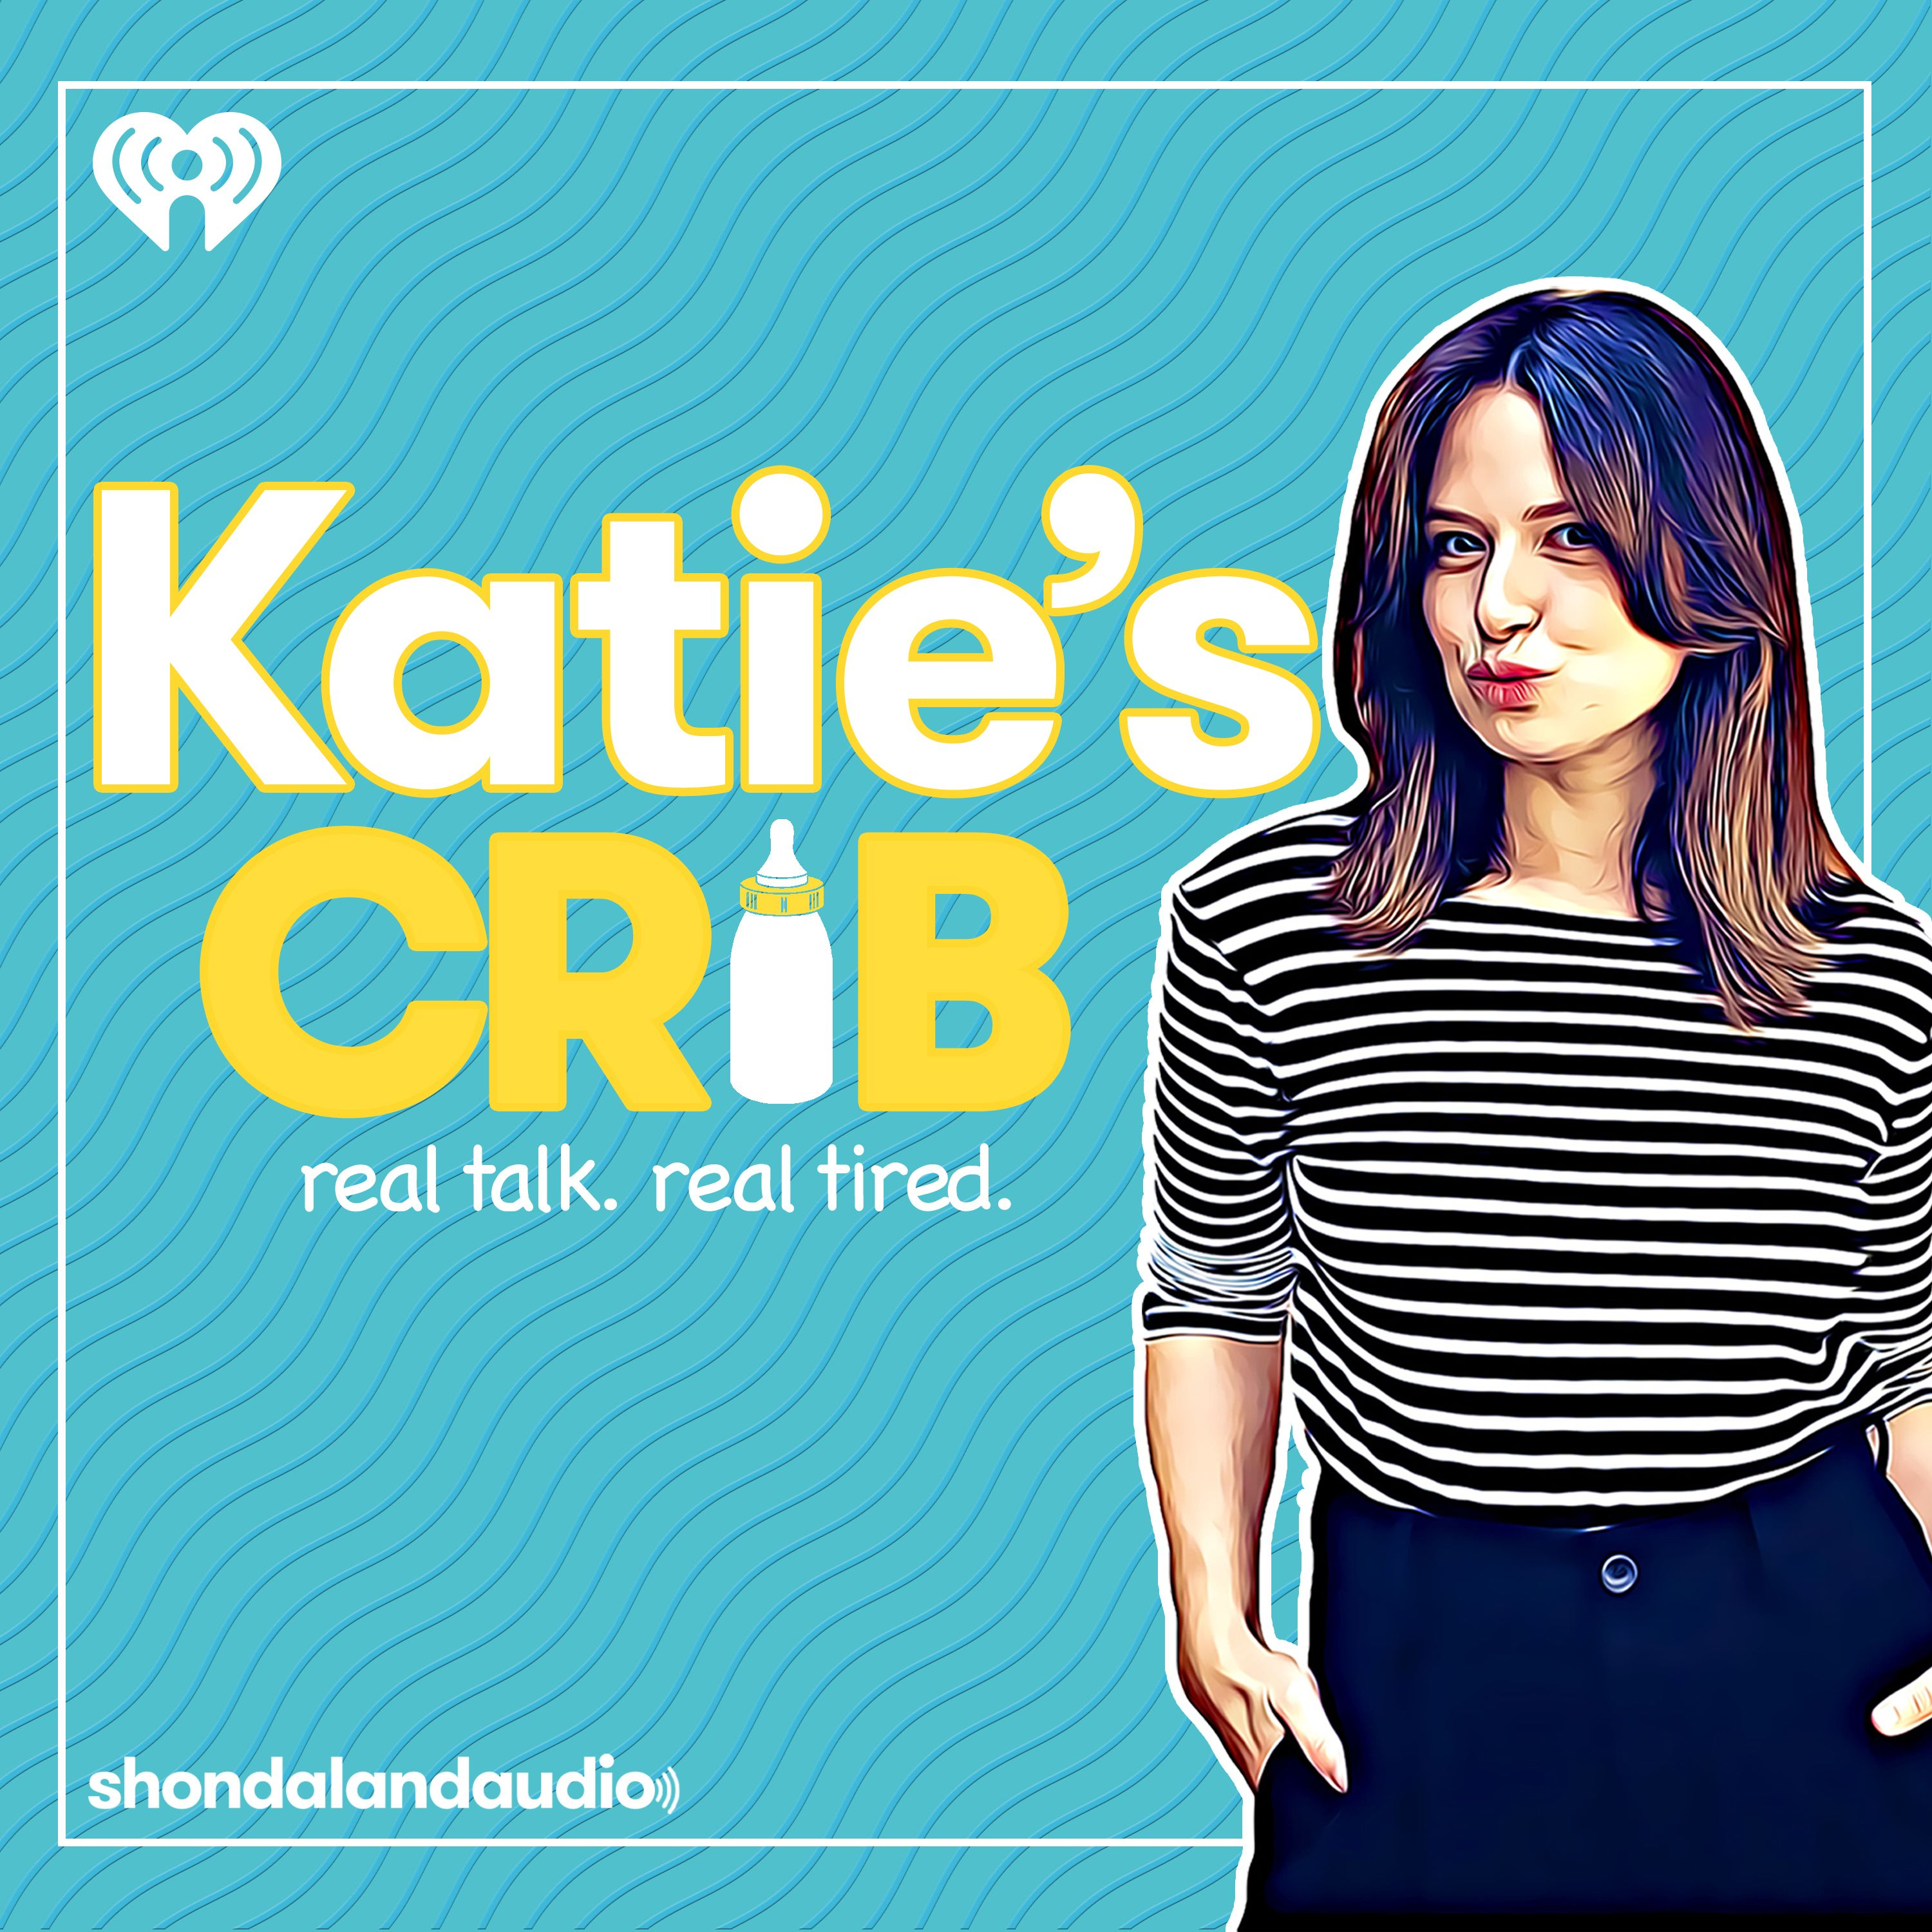 We Think You'd Like 'Katie's Crib'